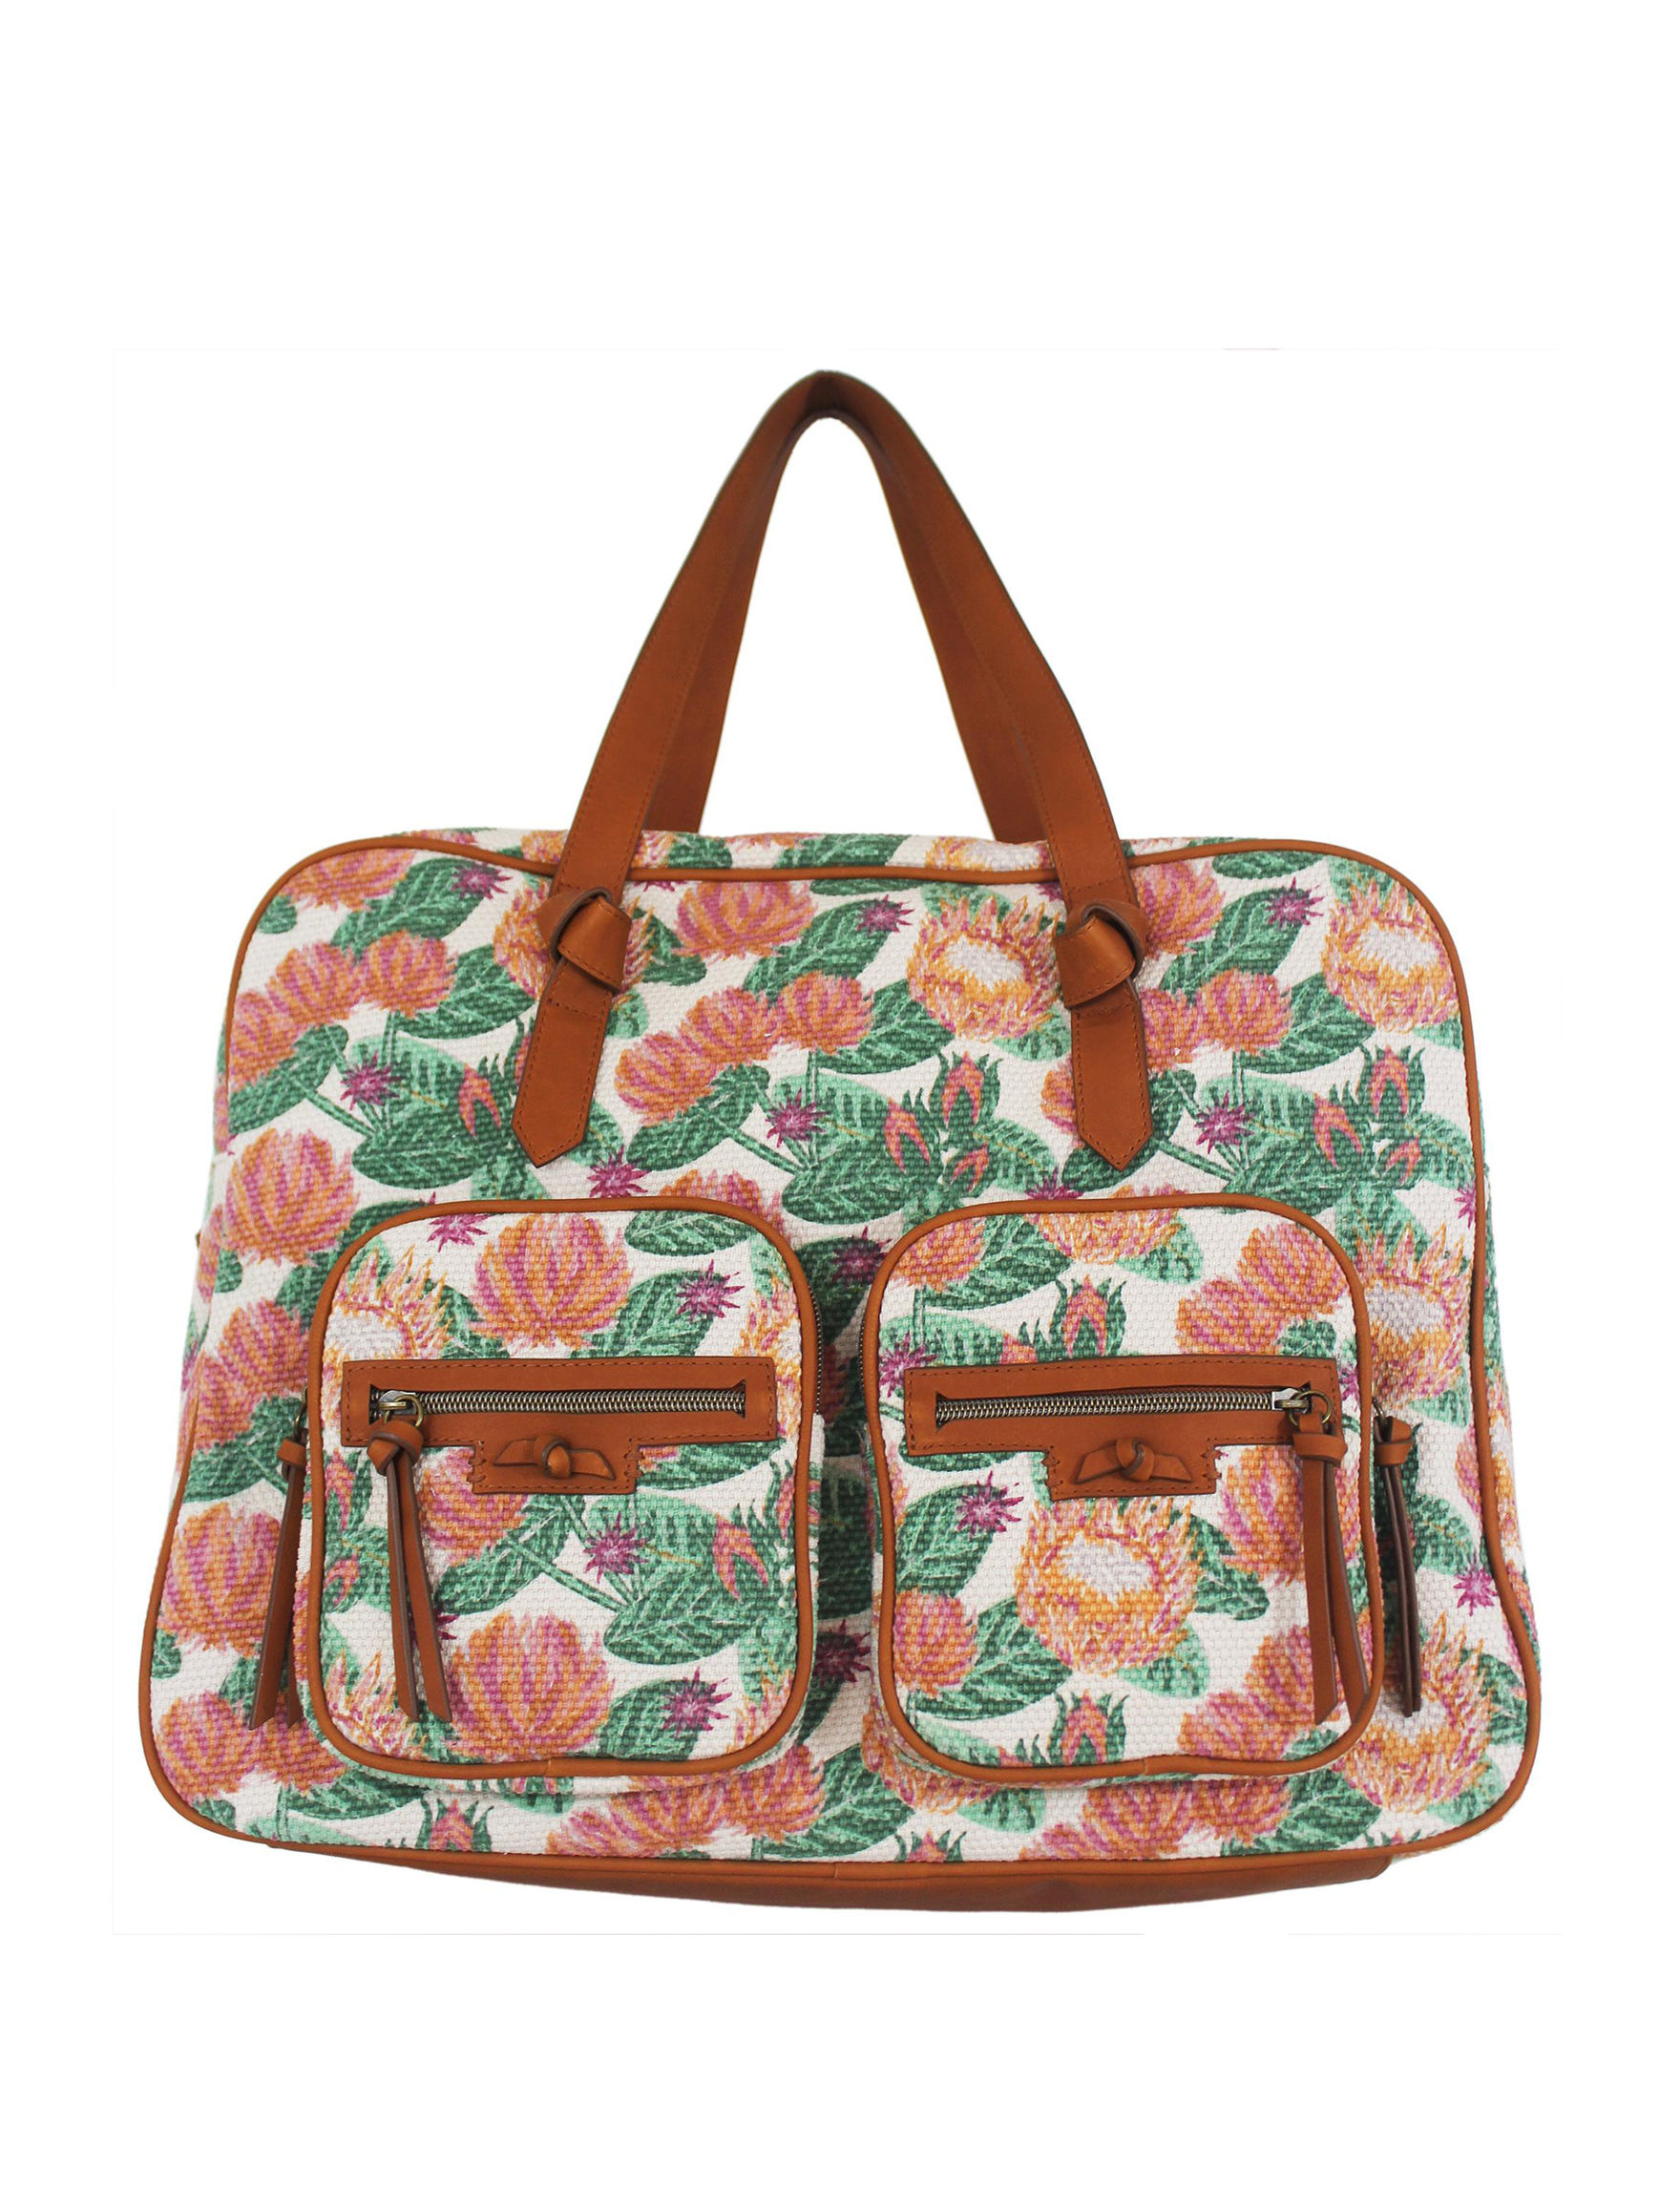 T Shirt & Jeans Green Floral Weekend Bags